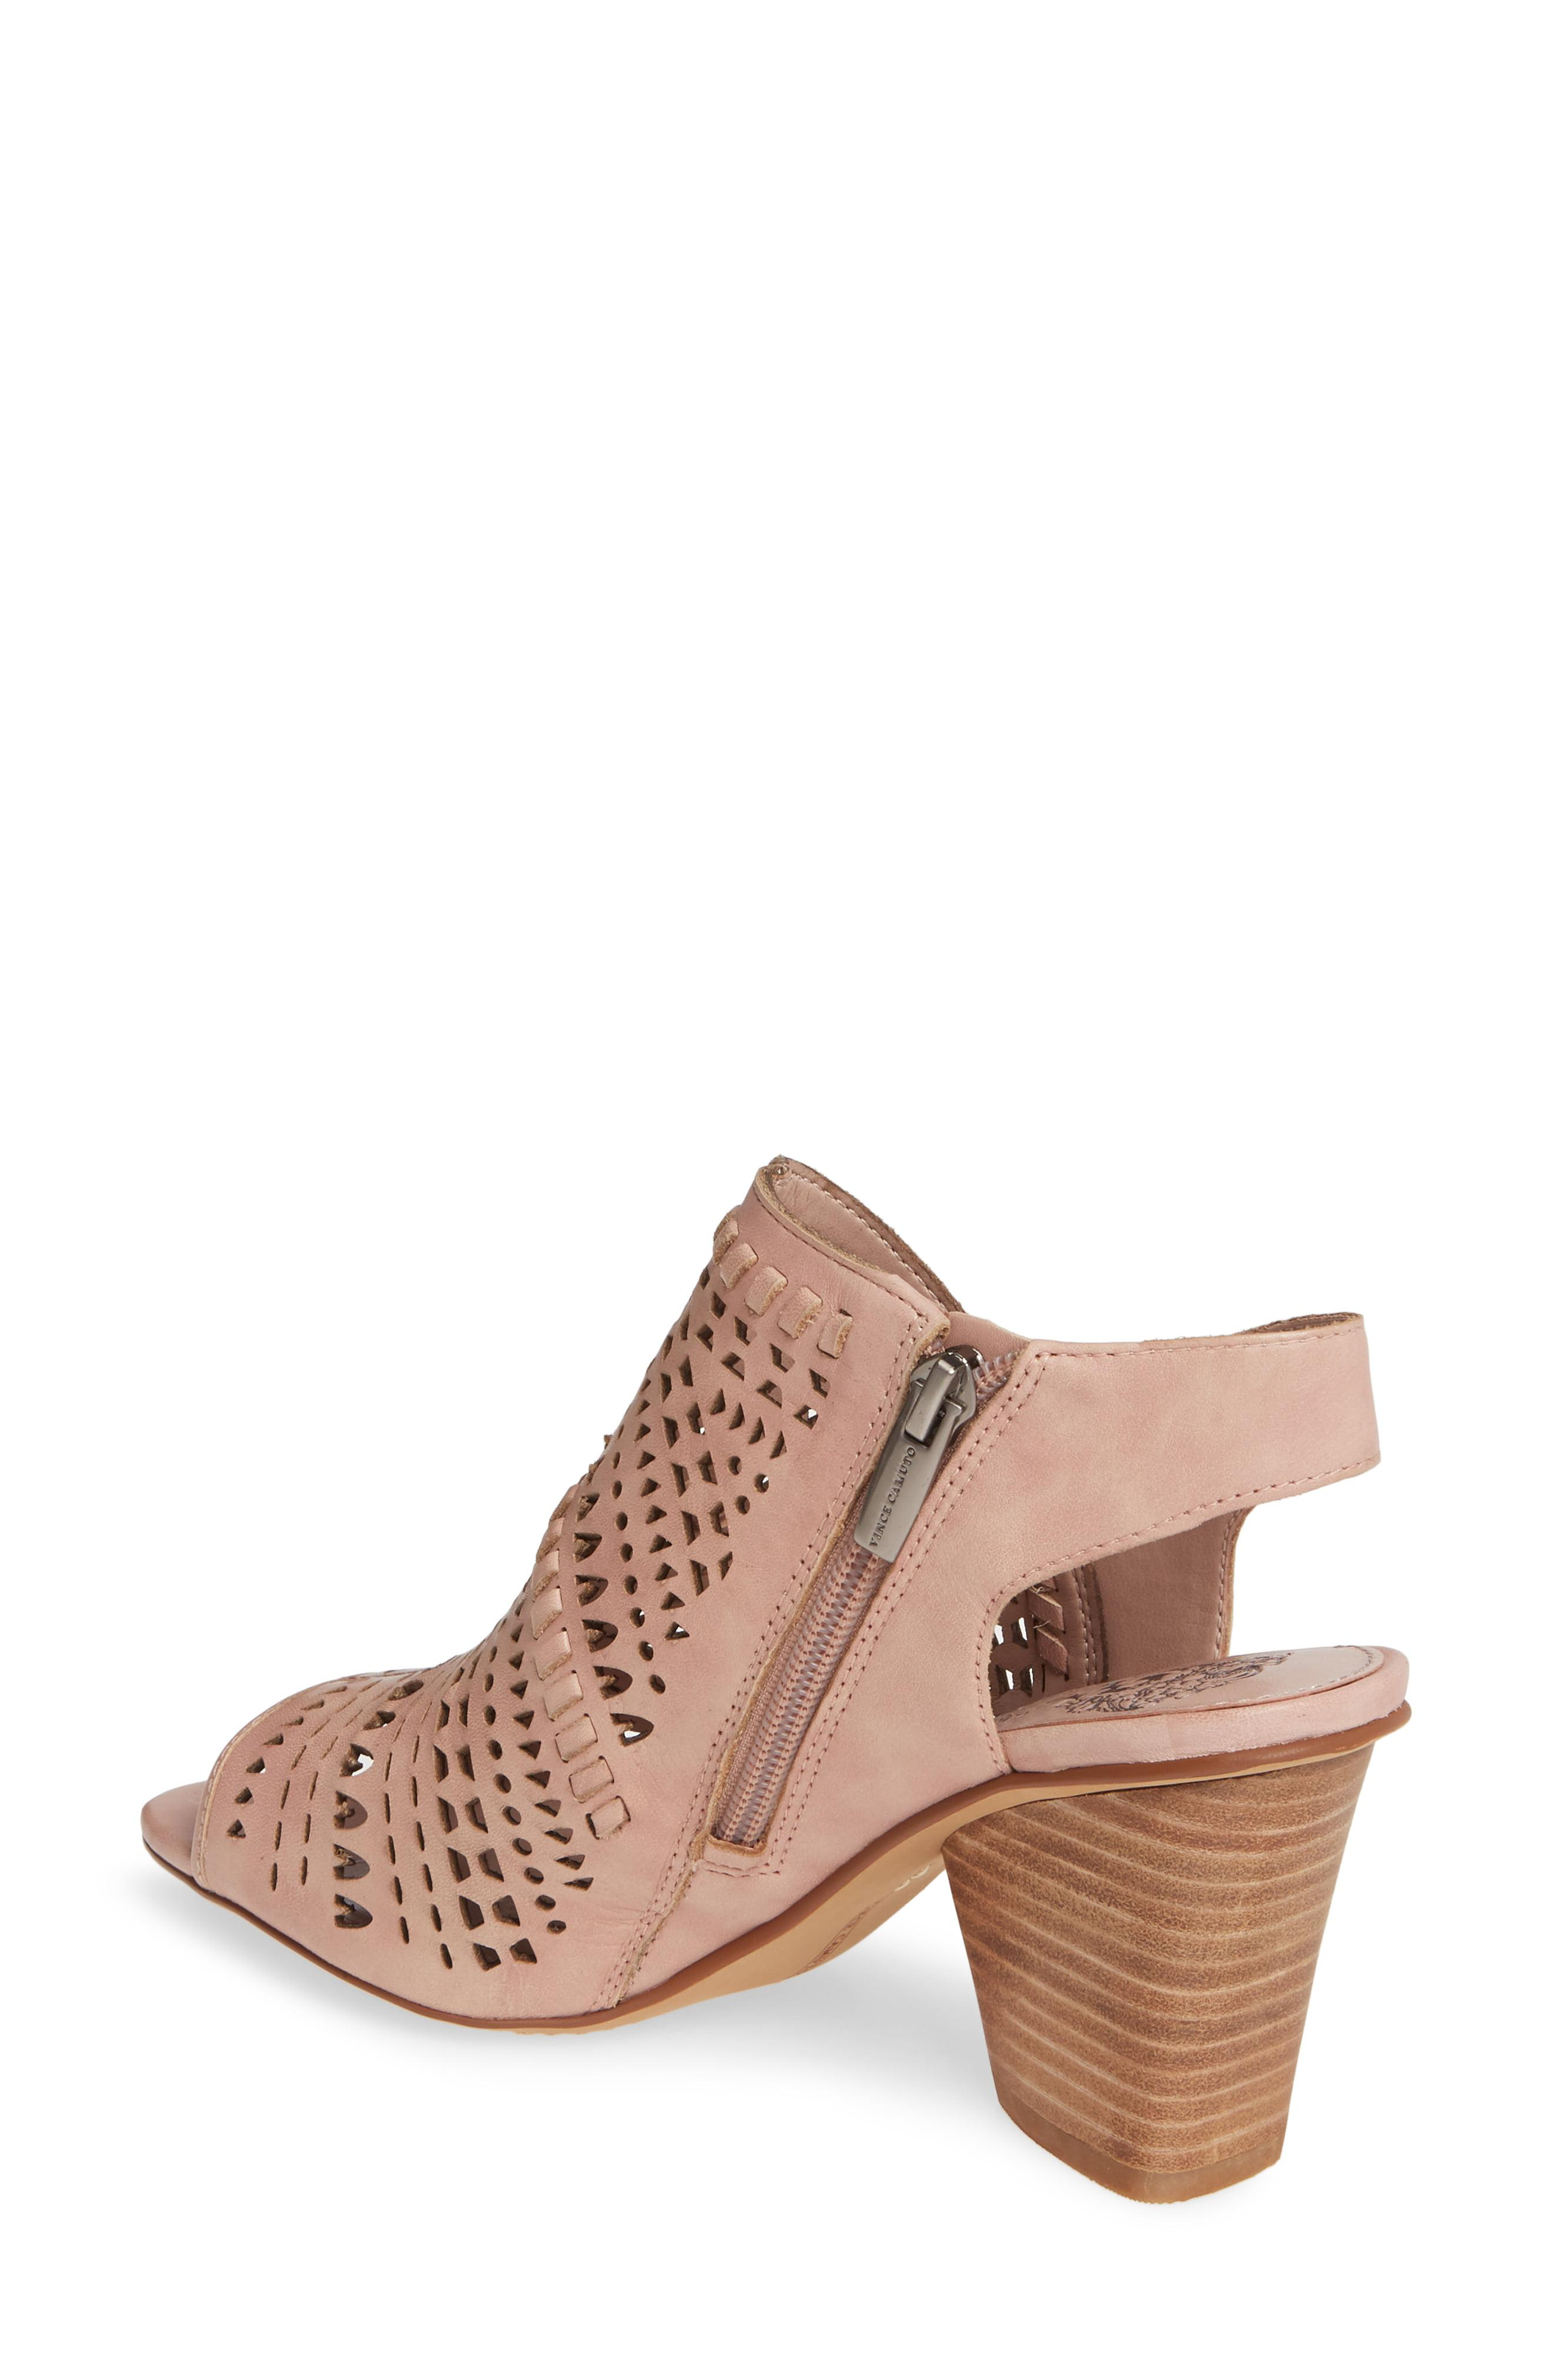 269546a94bf Vince Camuto - Black Derechie Perforated Shield Sandal - Lyst. View  fullscreen